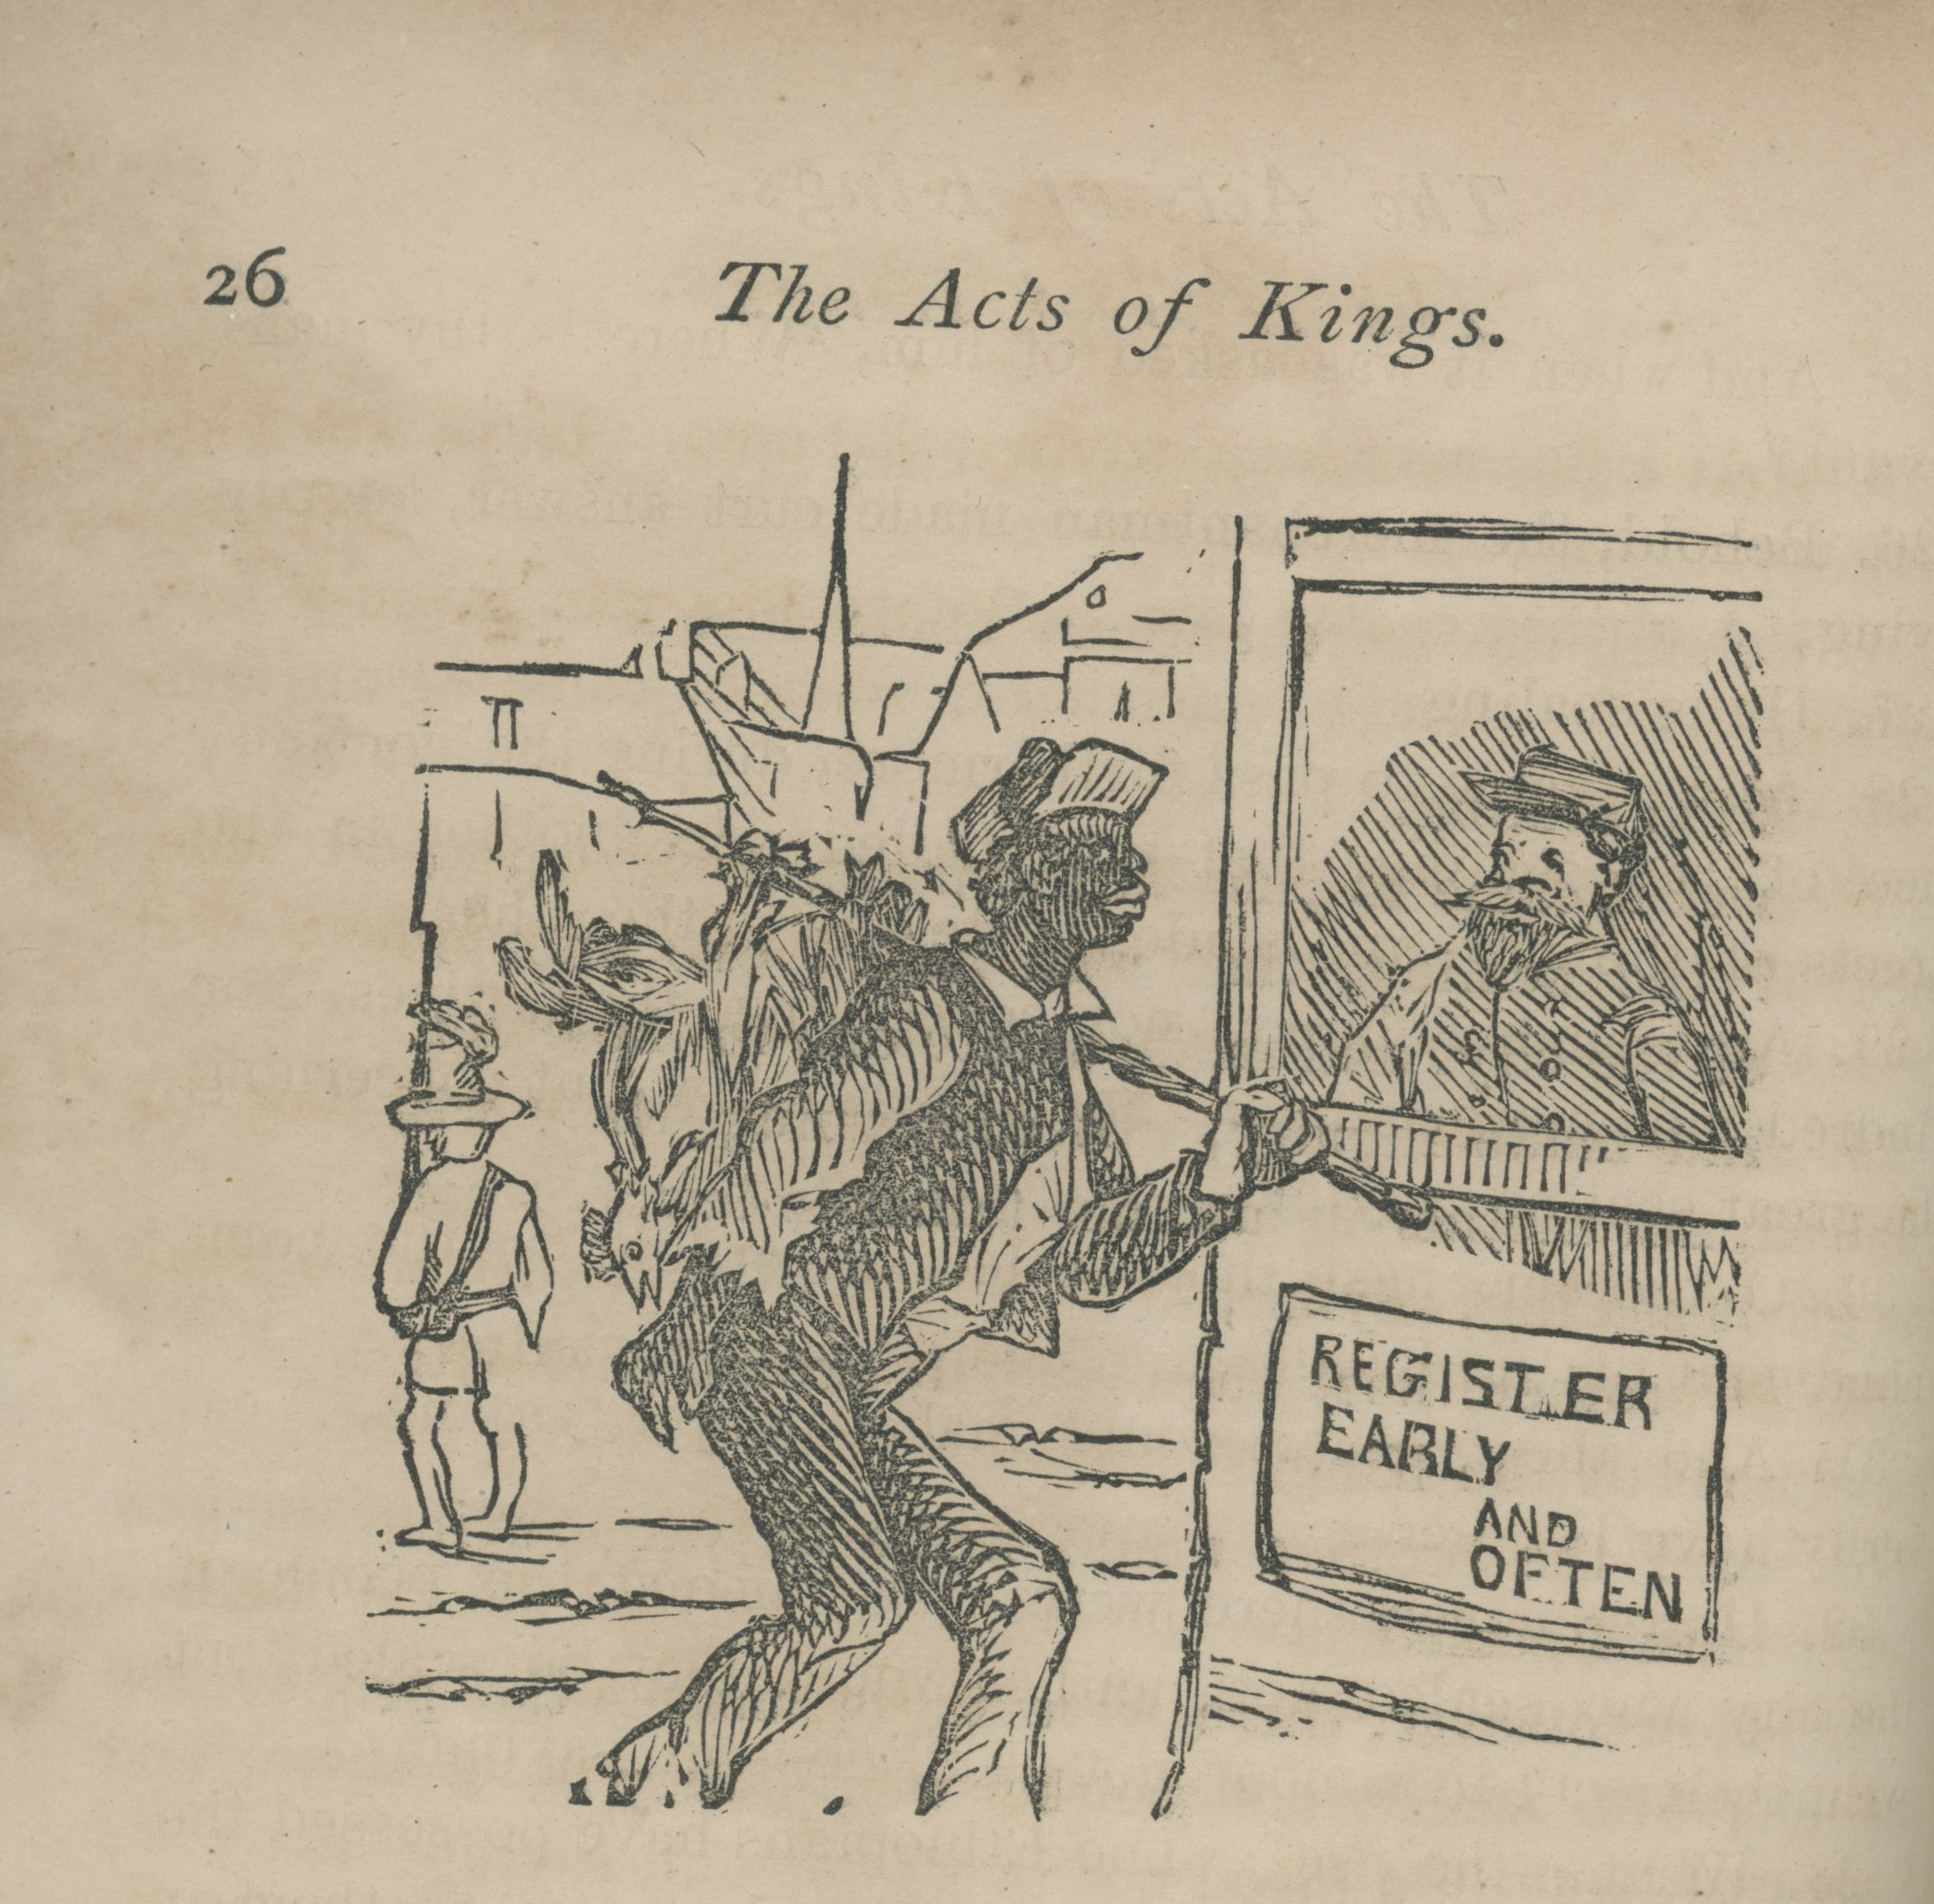 The acts of kings: a biblical narrative of the acts of the first and second kings of the first province, once Virginia: including the doings of the first and second tycoons of the city of Richmond, from the surrender to the present time. New York: G.W. Carelton, 1868.